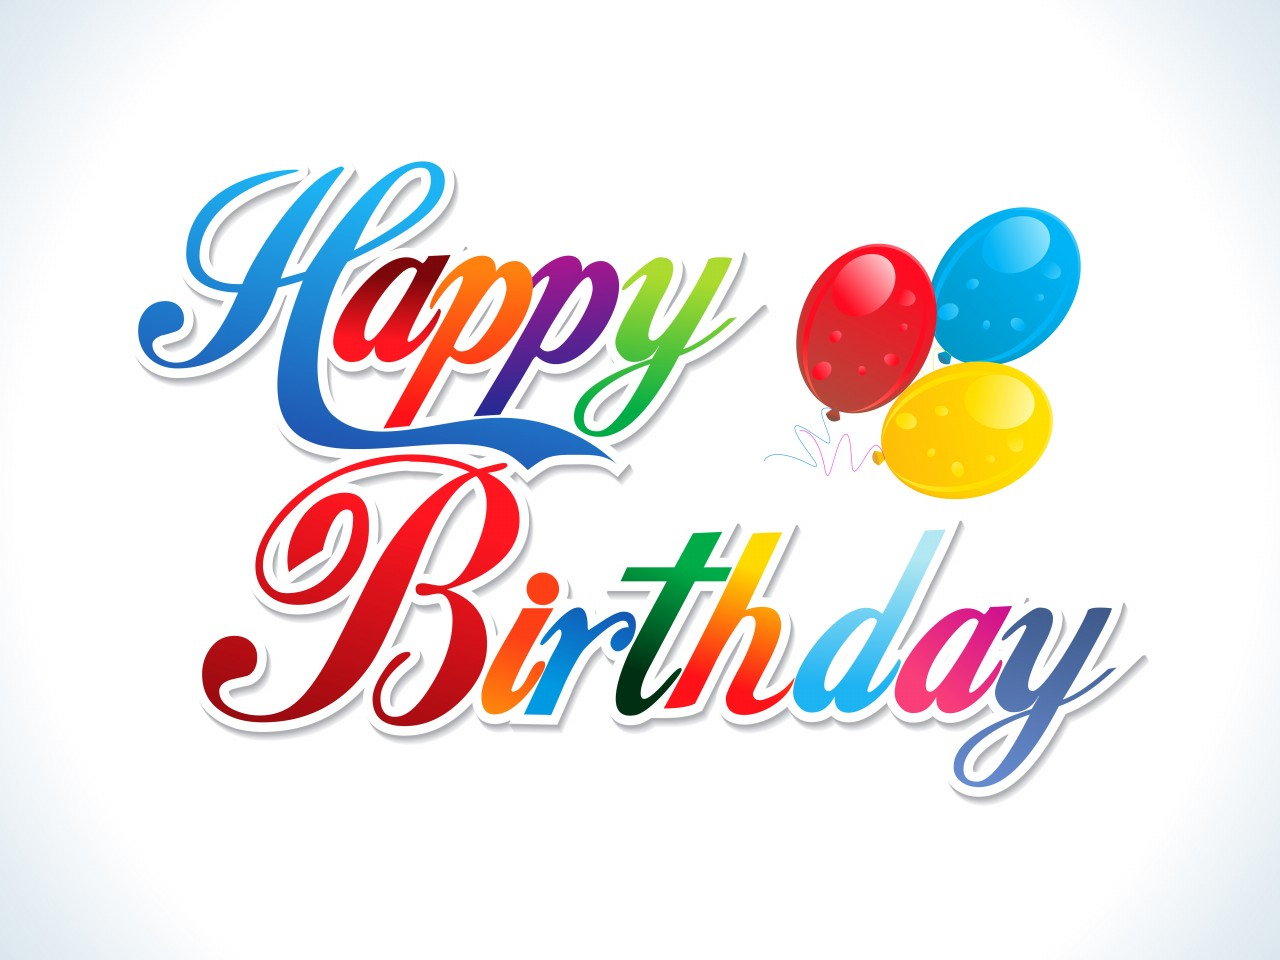 Abstract Happy Birthday Backgrounds Elsoar 1280x960